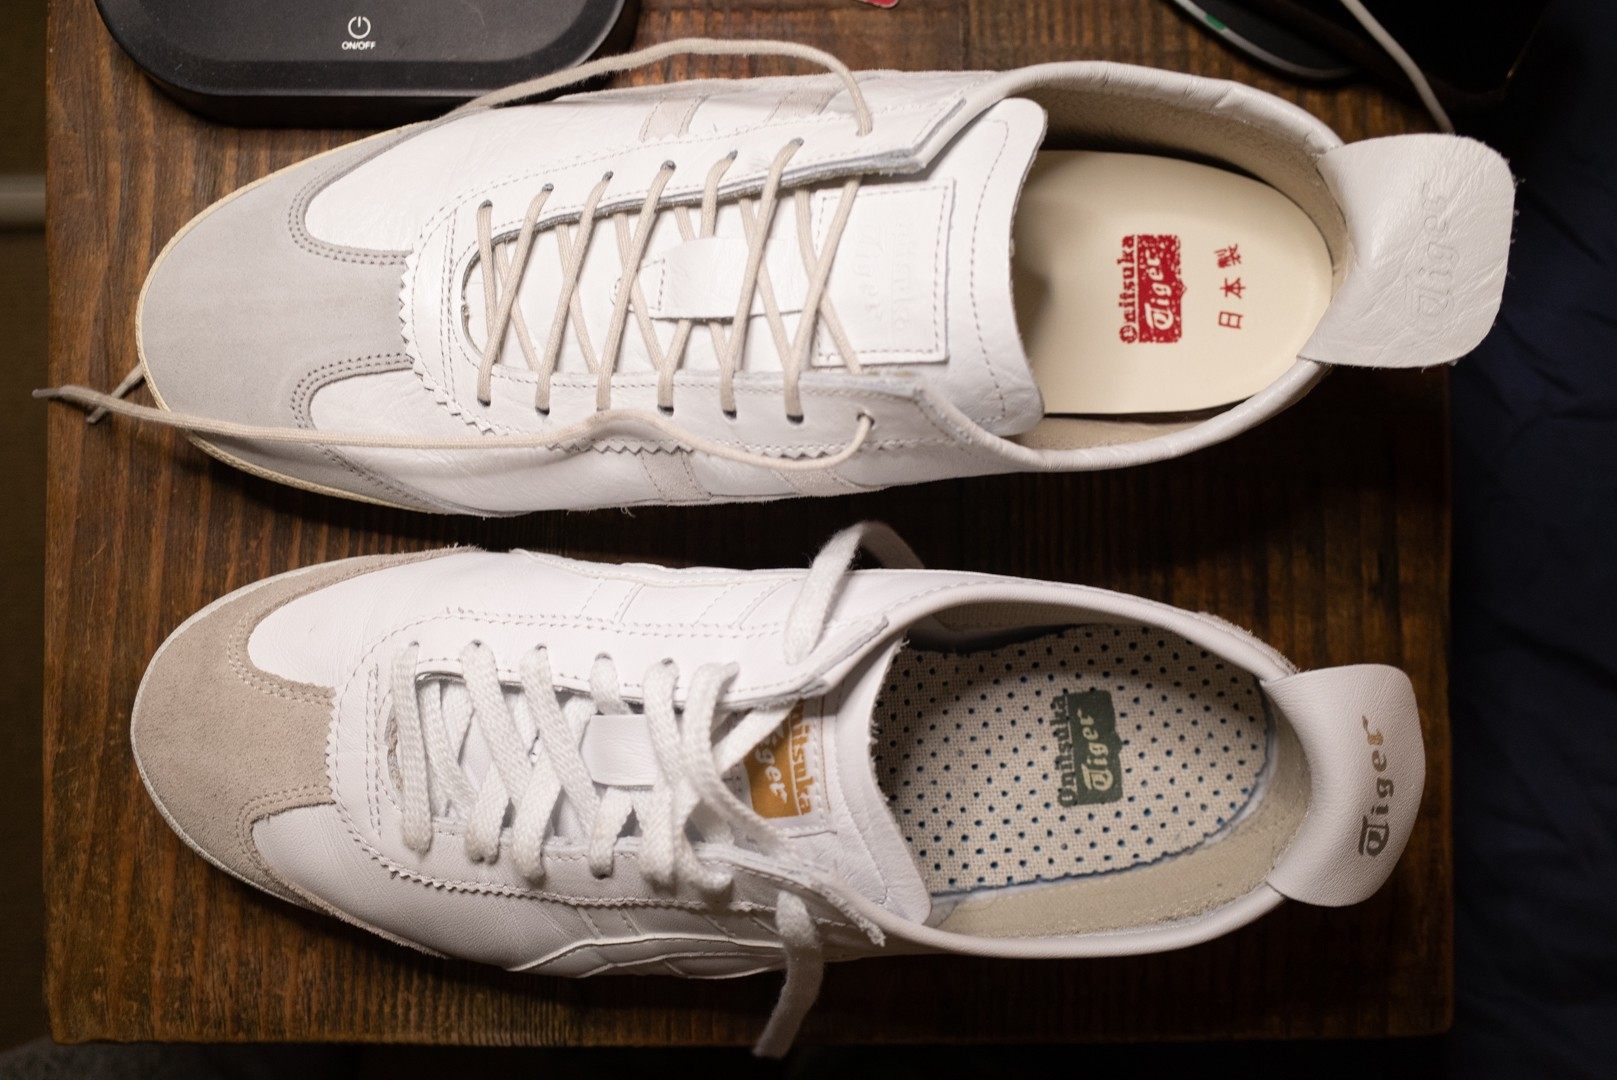 onitsuka tiger insole off 55% - www